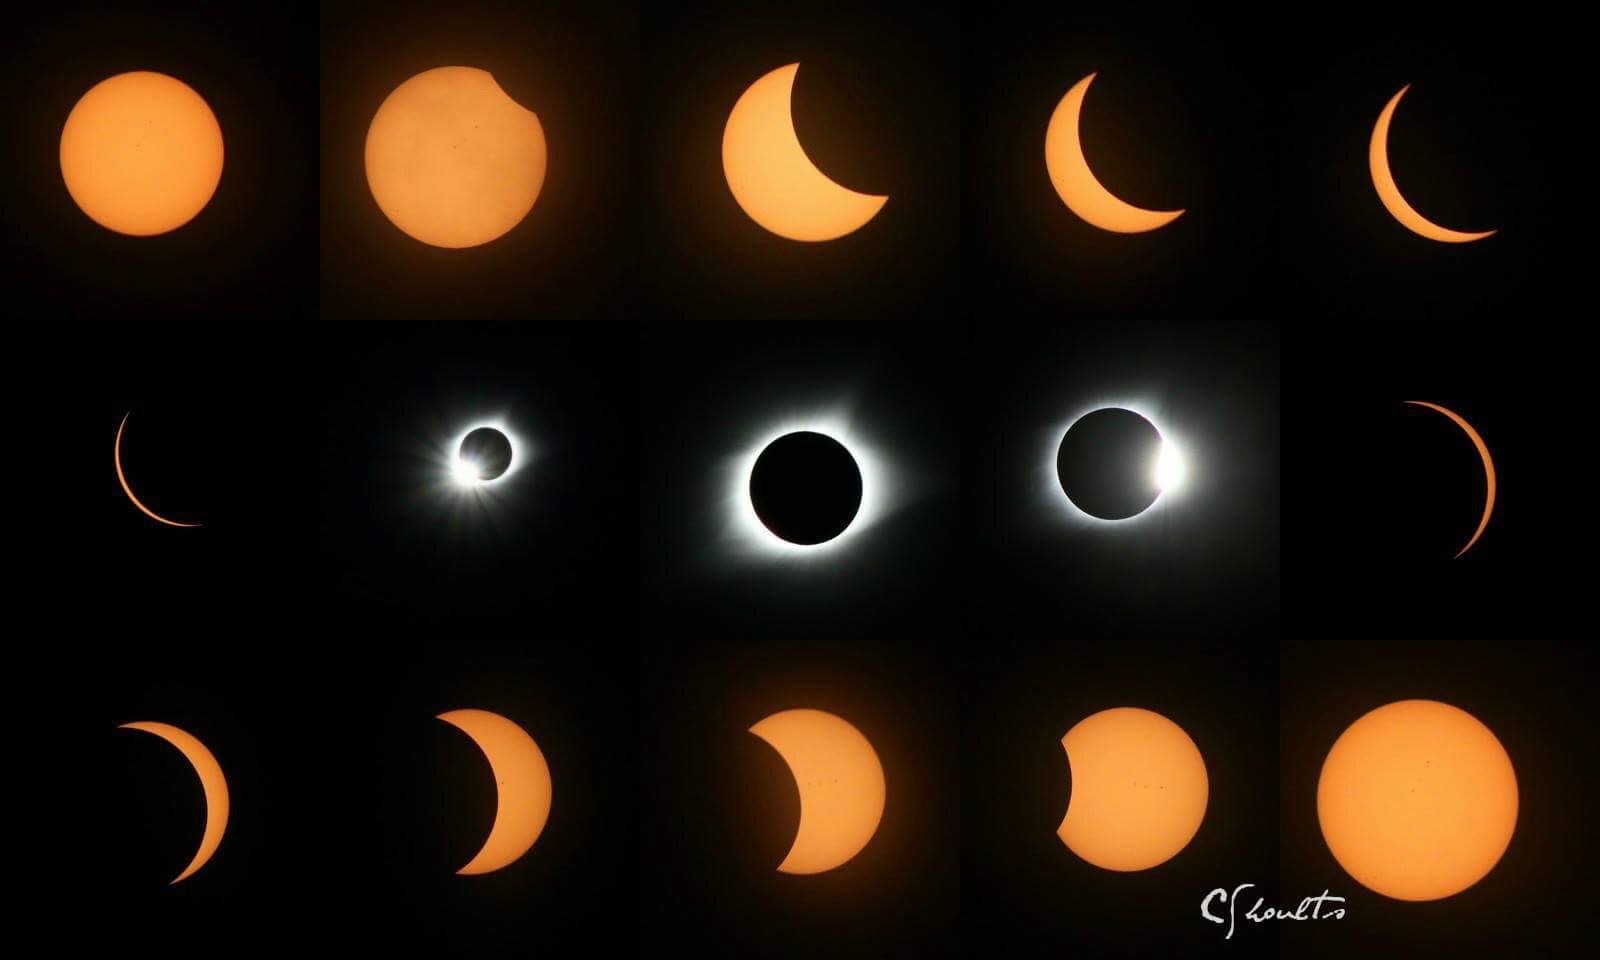 Solar eclipse collage